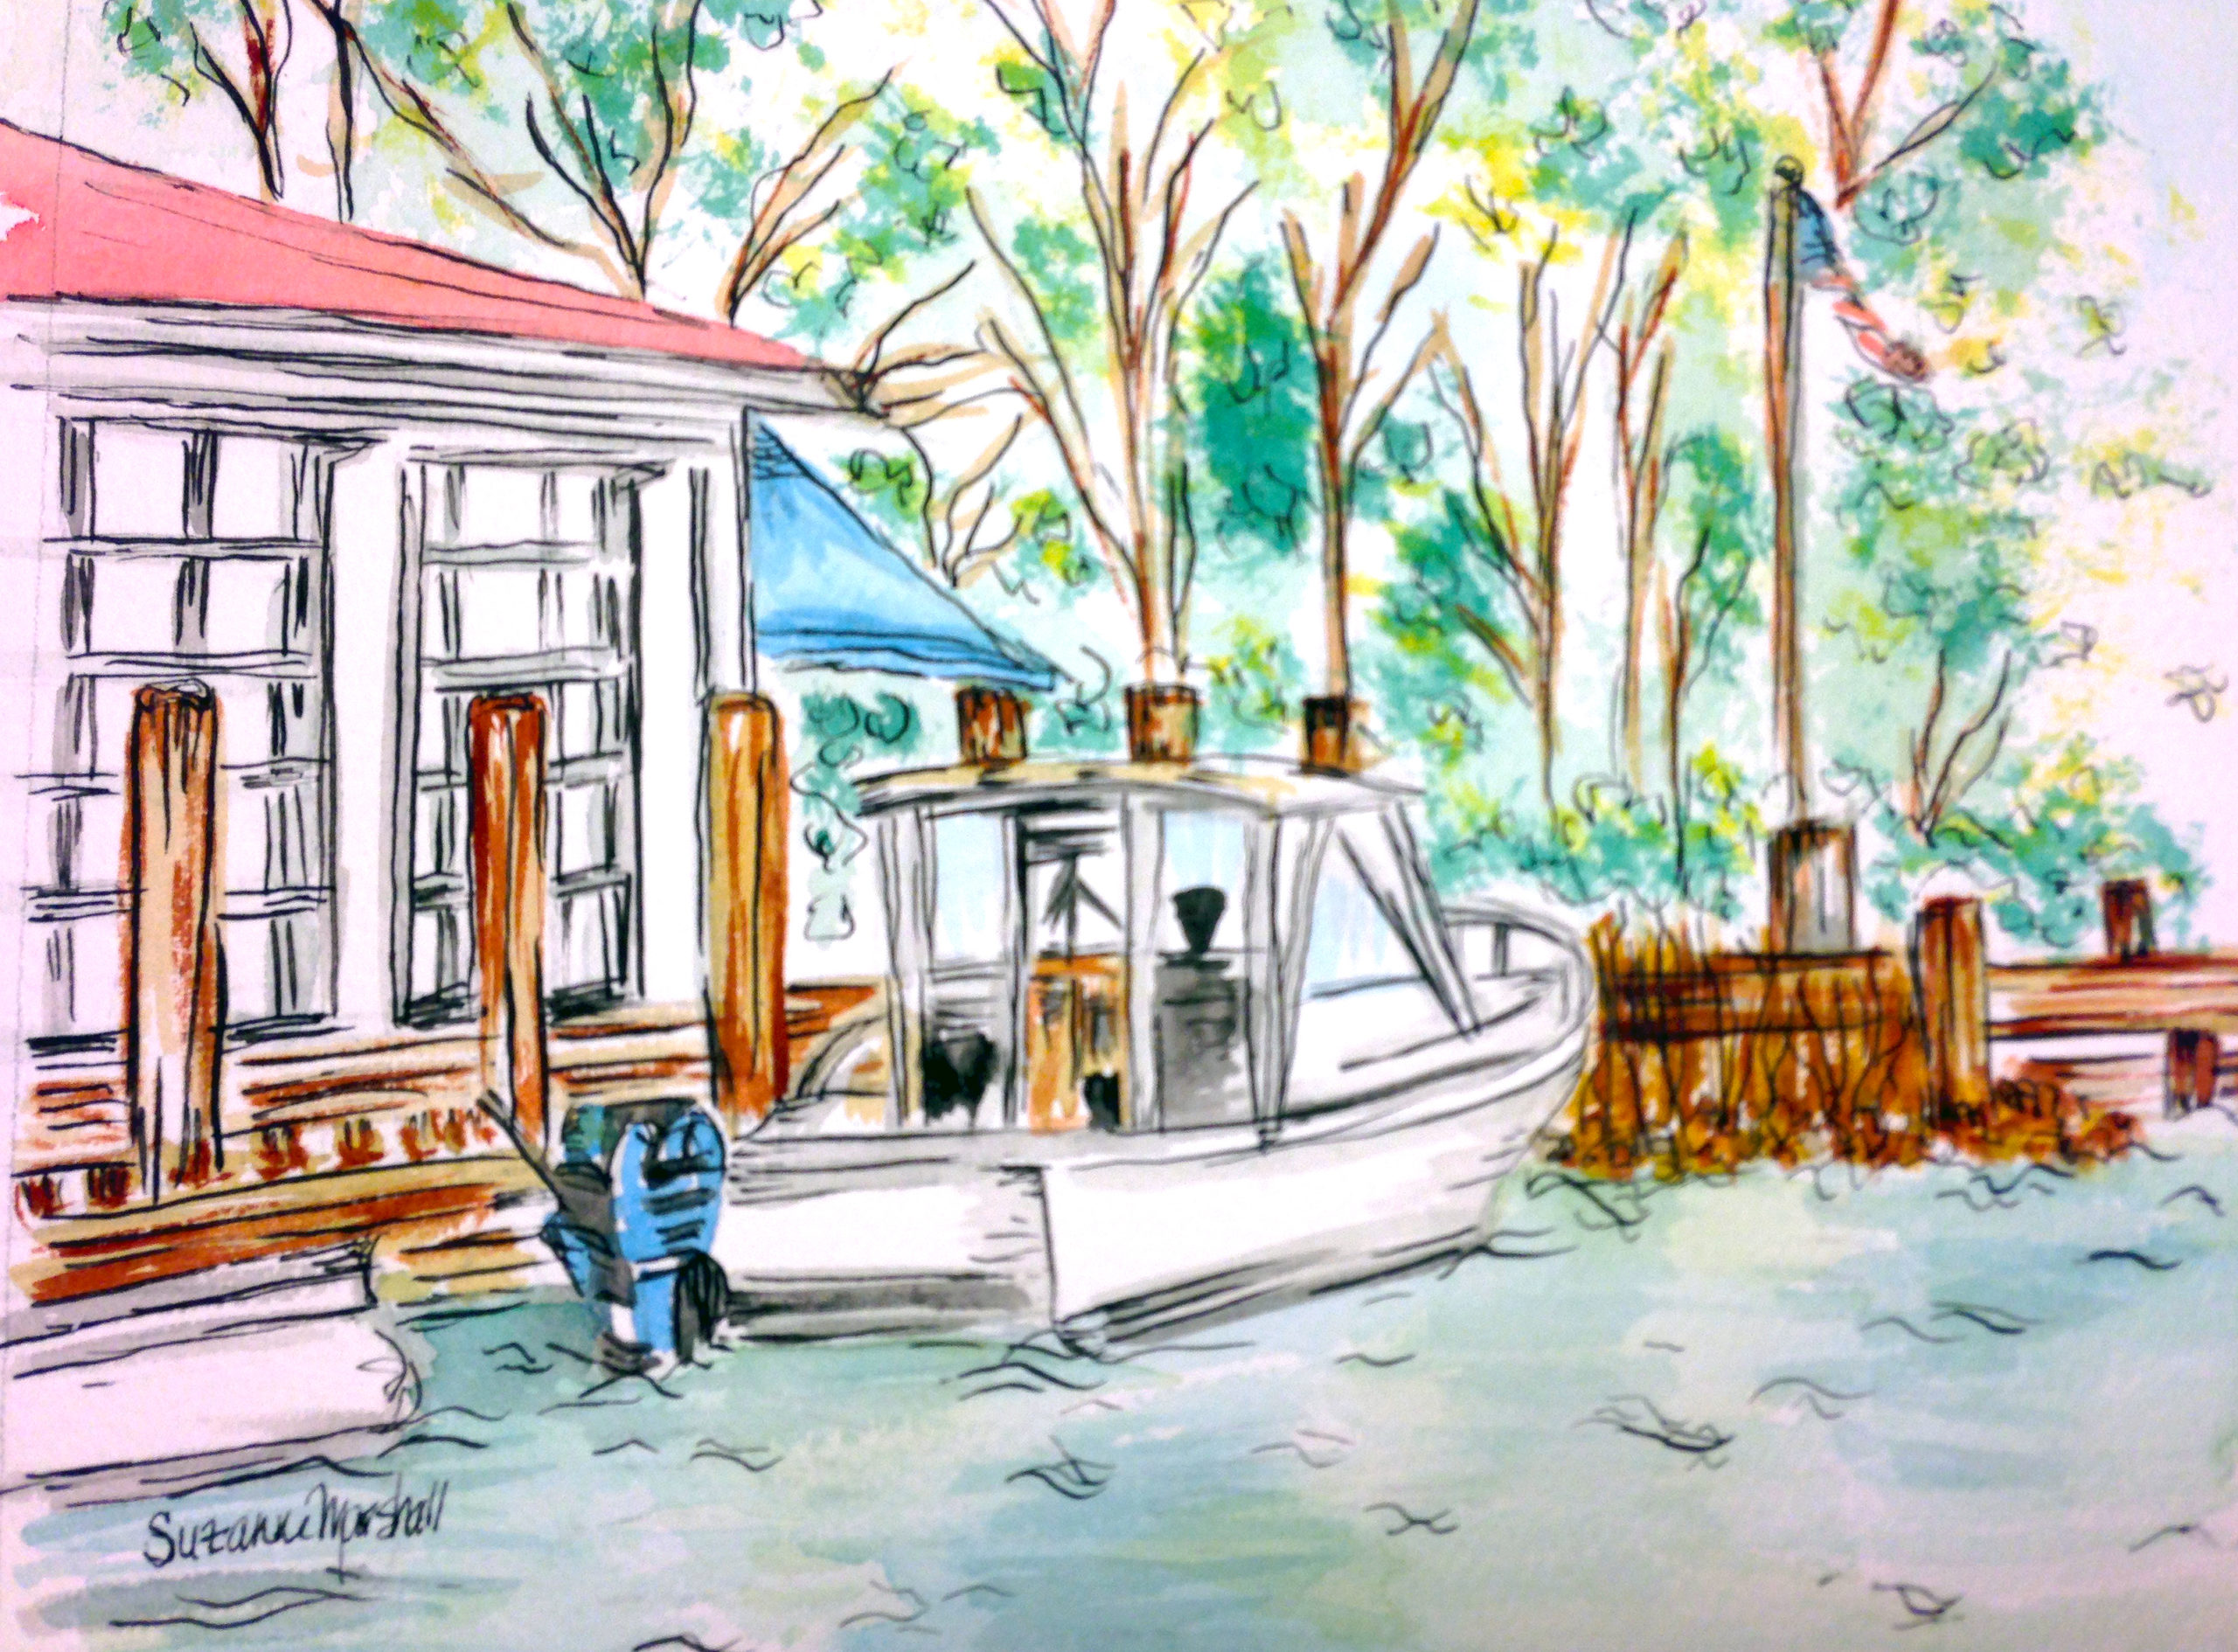 Watercolor and Pen-and-Ink of The Point Restaurant for the Greater Severna Park and Arnold Chamber Business and Community Guide Book Cover